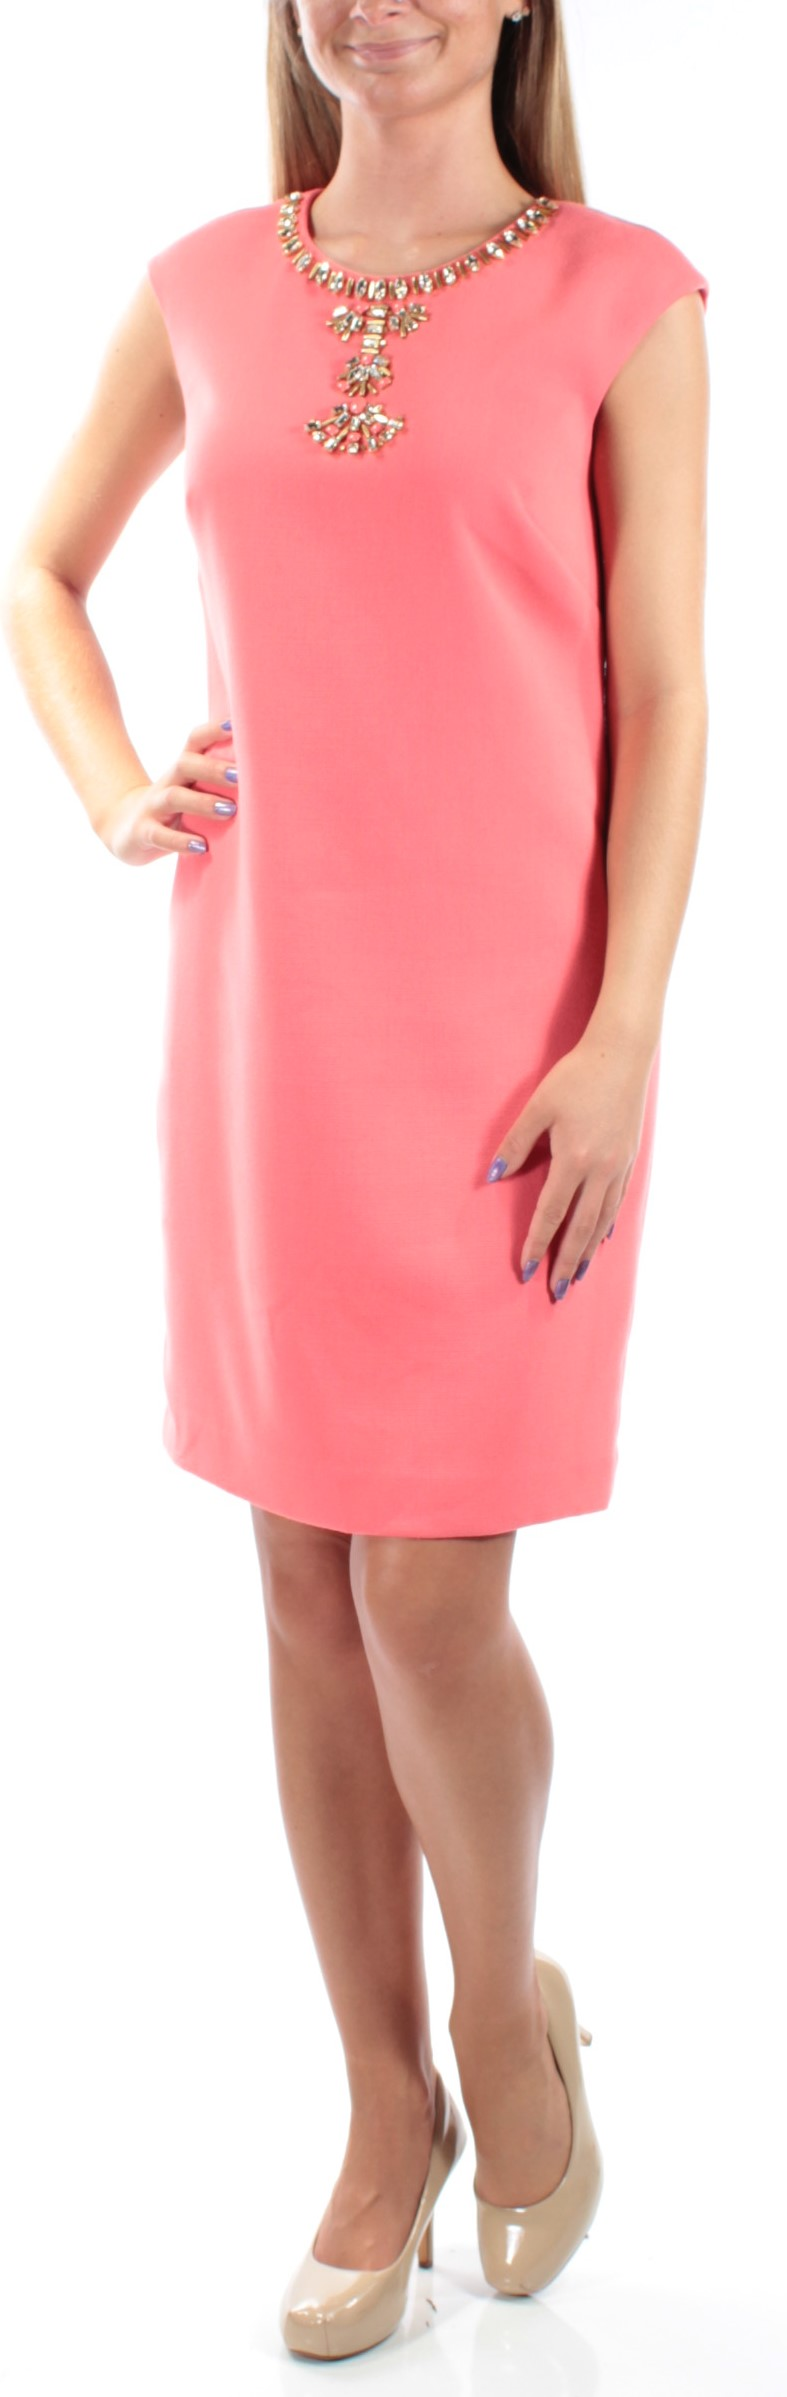 9790aaeee8e8 VINCE CAMUTO $168 Womens 1160 Coral Cap Sleeve Shift Party Dress 10 B+B